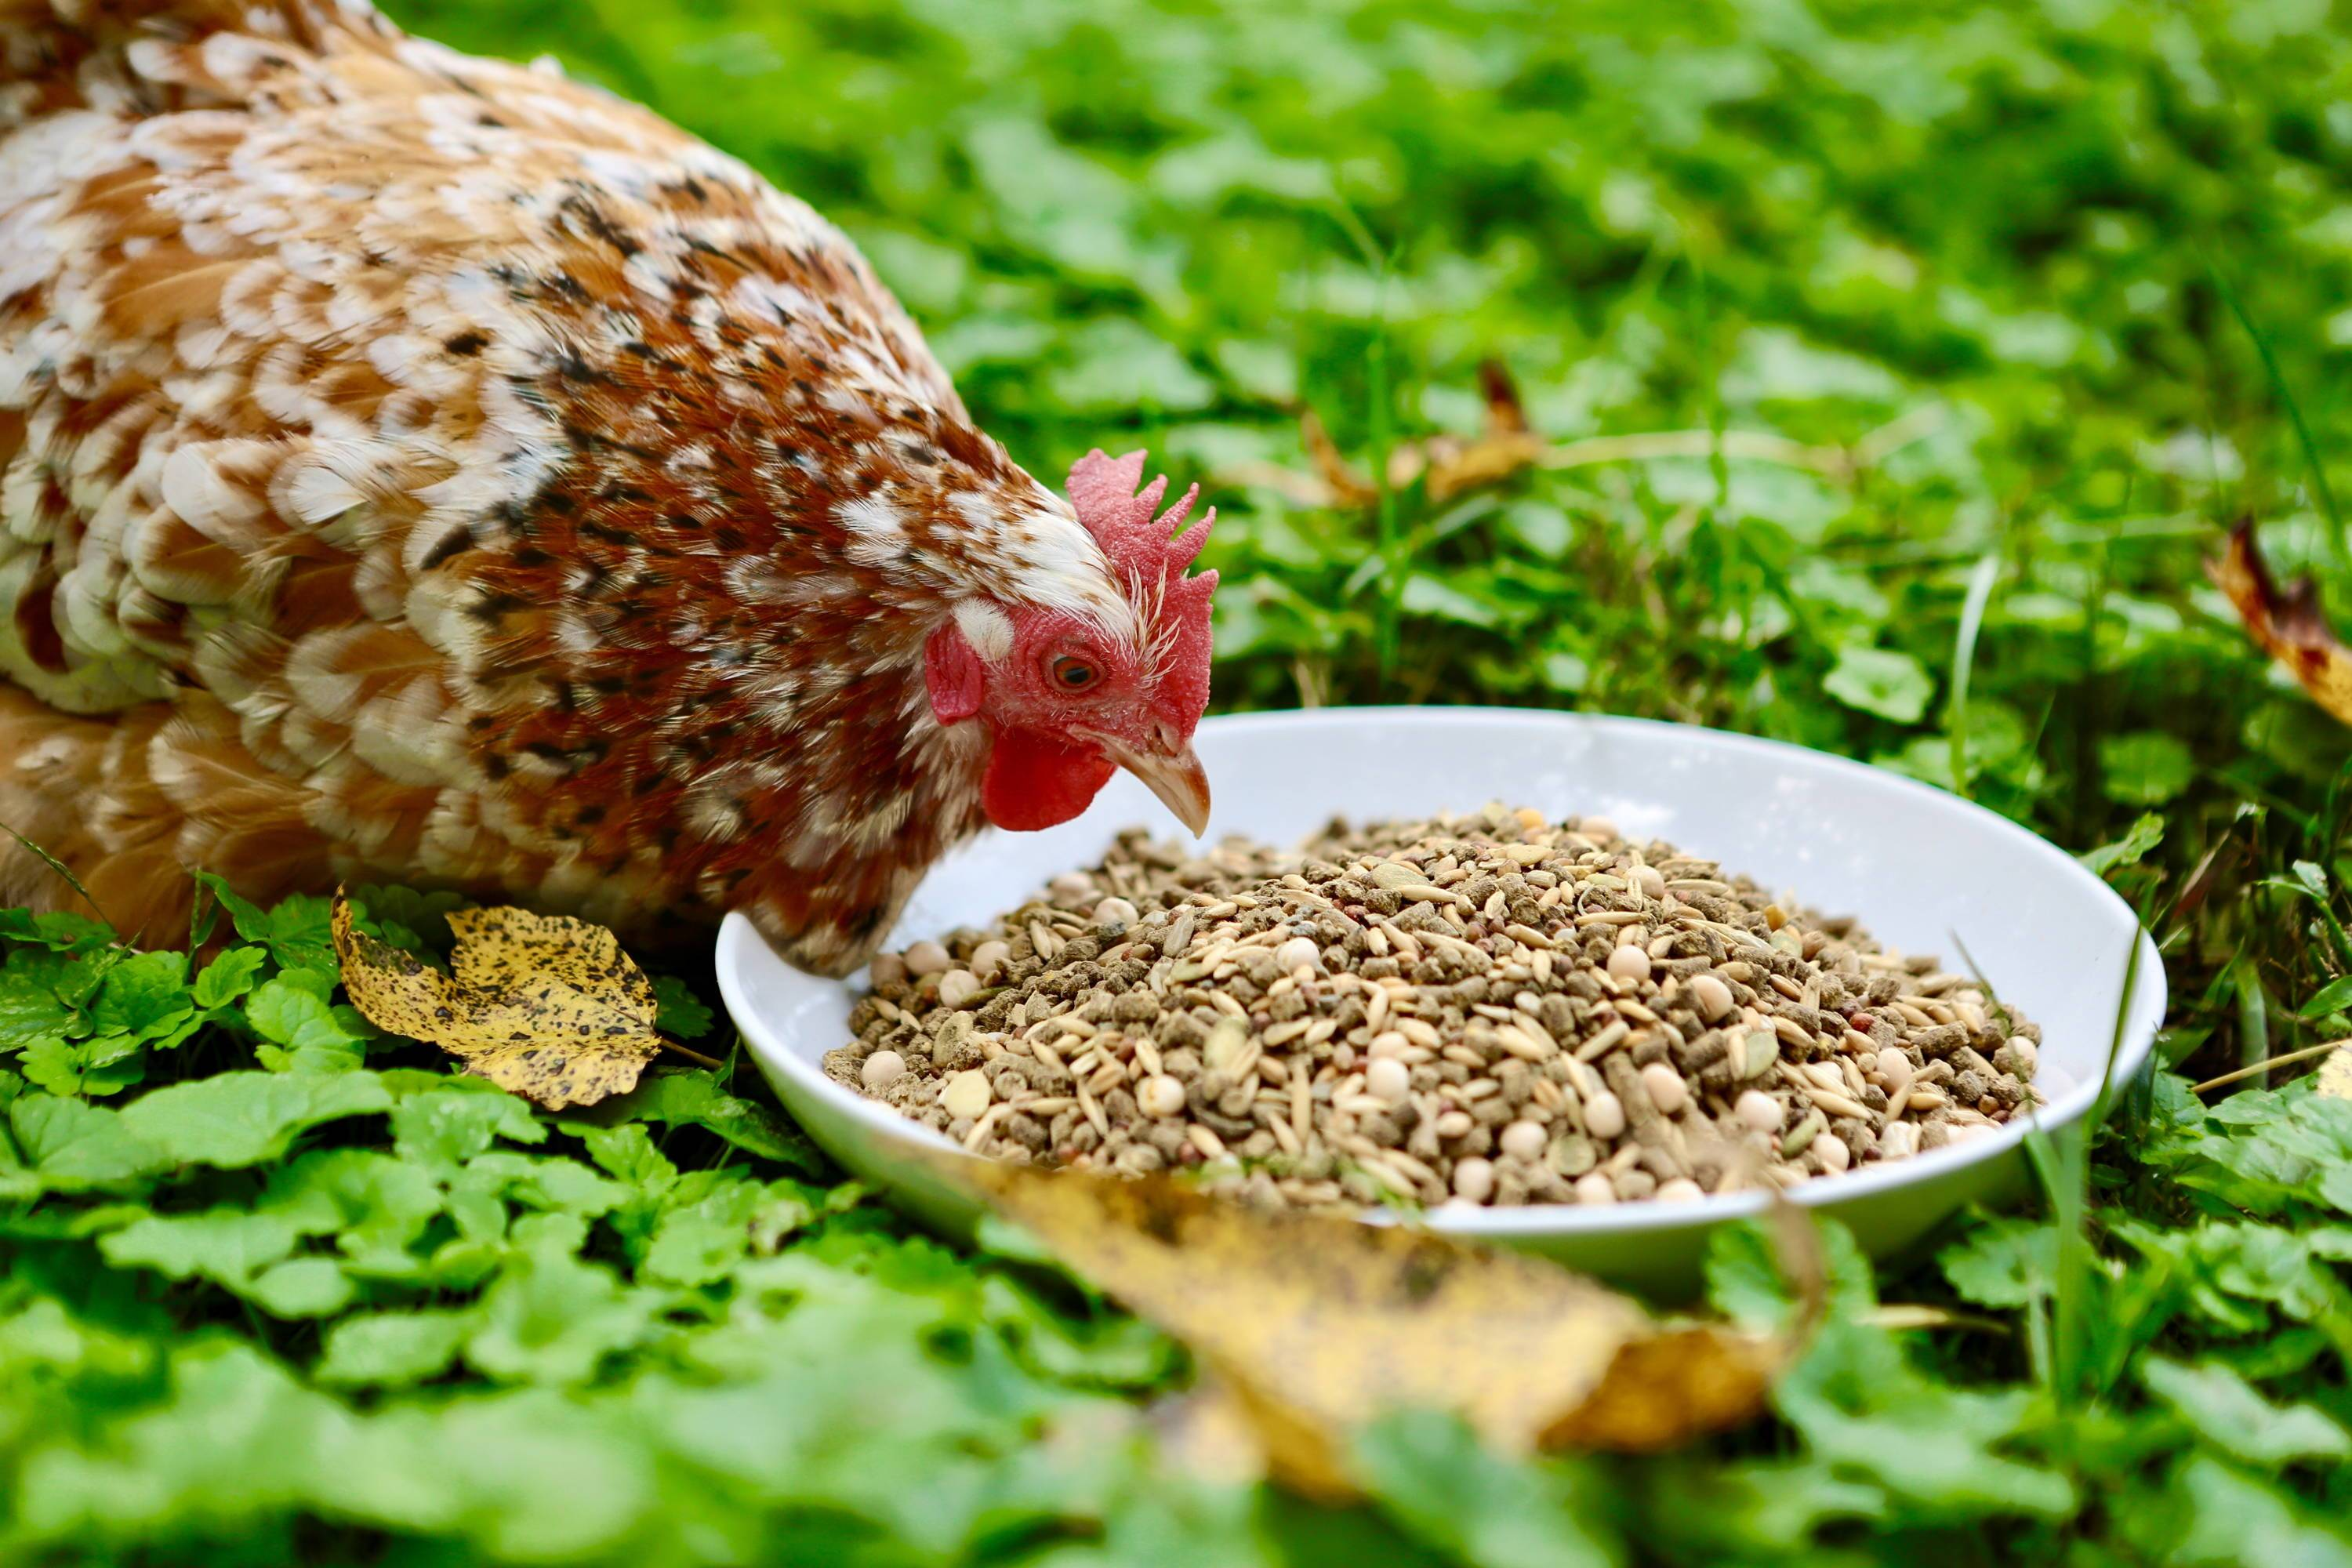 Feeding Guide: How to Introduce New Food to Your Chickens